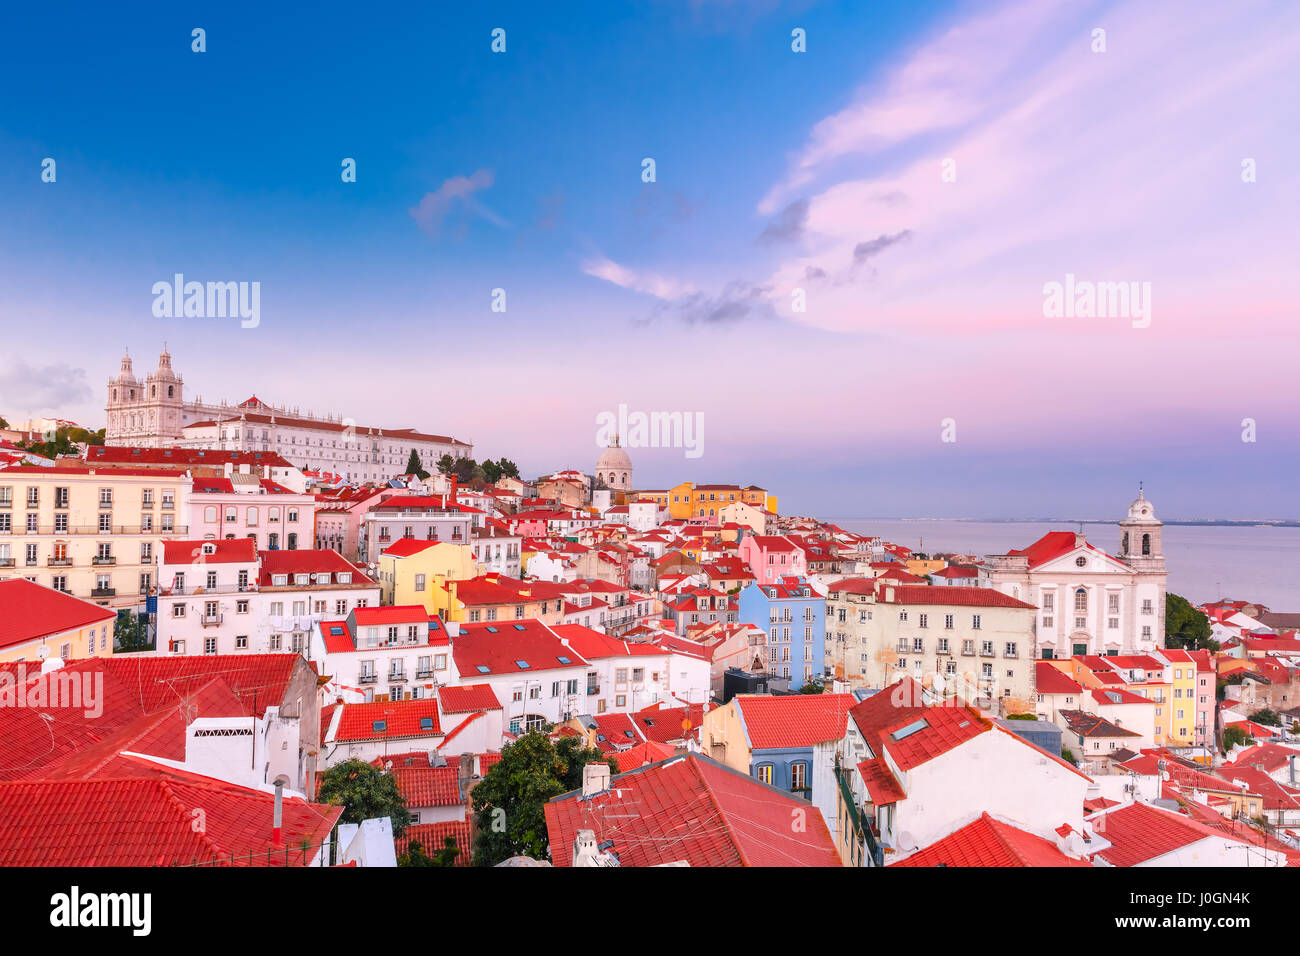 View of Alfama, the oldest district of the Old Town, with Monastery of Sao Vicente de Fora, Church of Saint Stephen - Stock Image